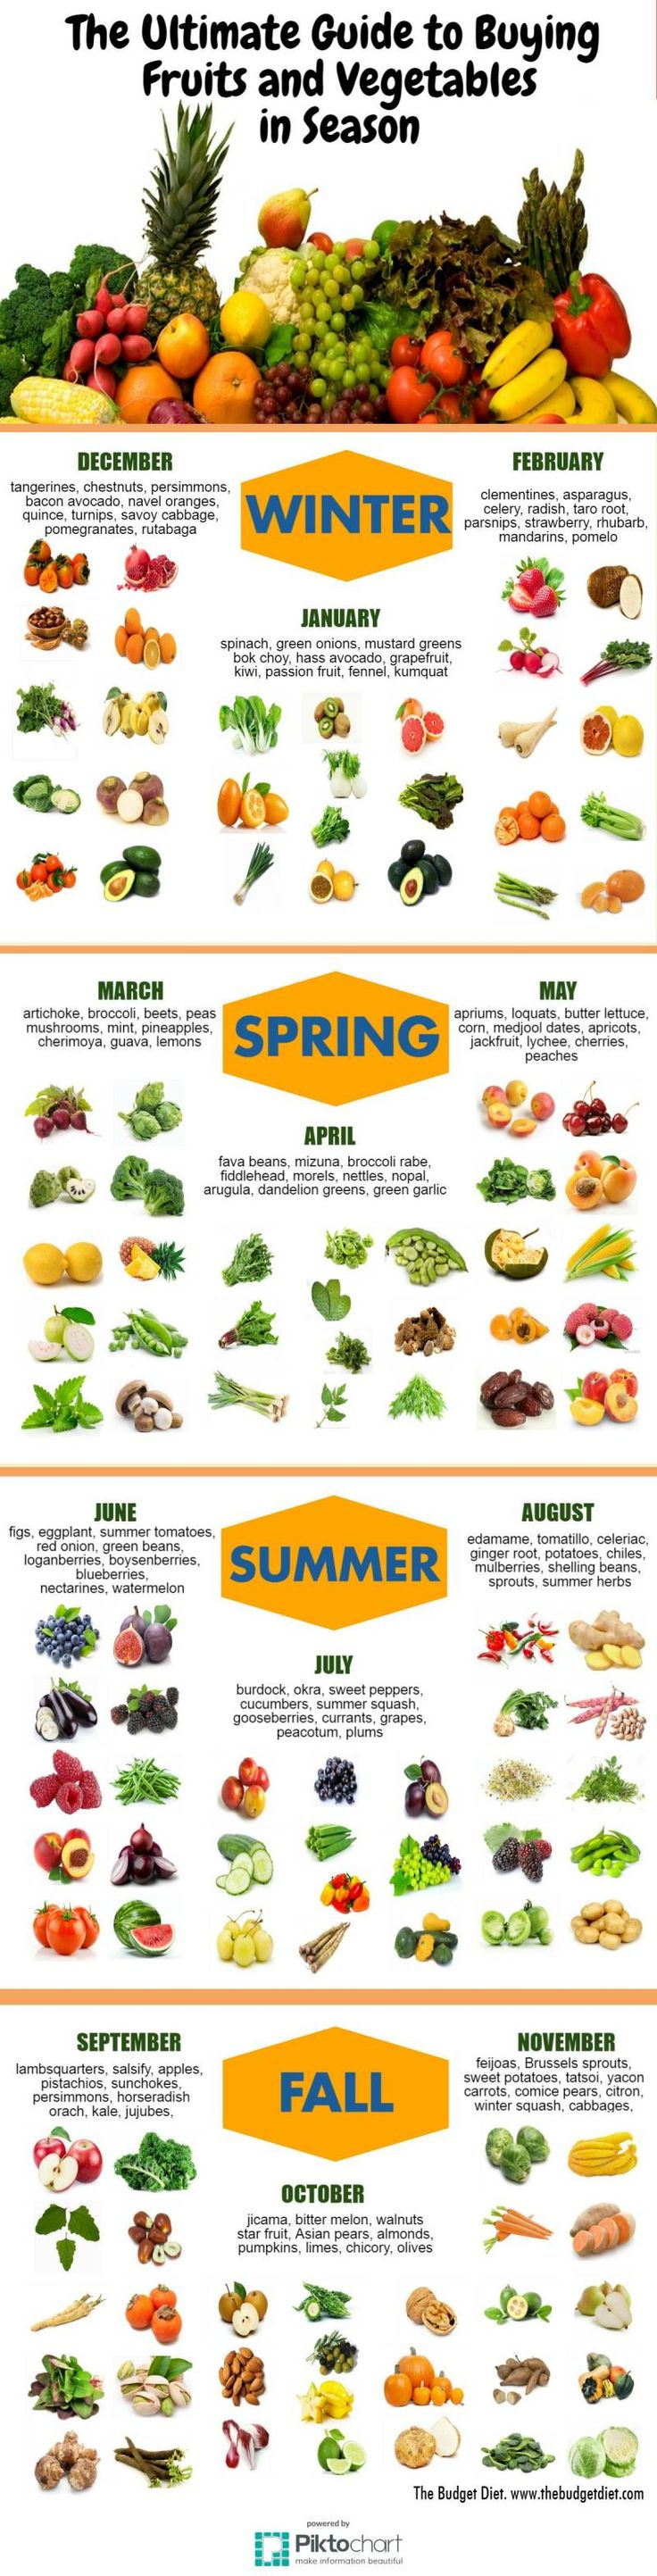 The Ultimate Guide to Buying Fruits and Vegetables in SeasonThe Budget Diet | Frugal Living, Budgeting Tips, Financial Freedom